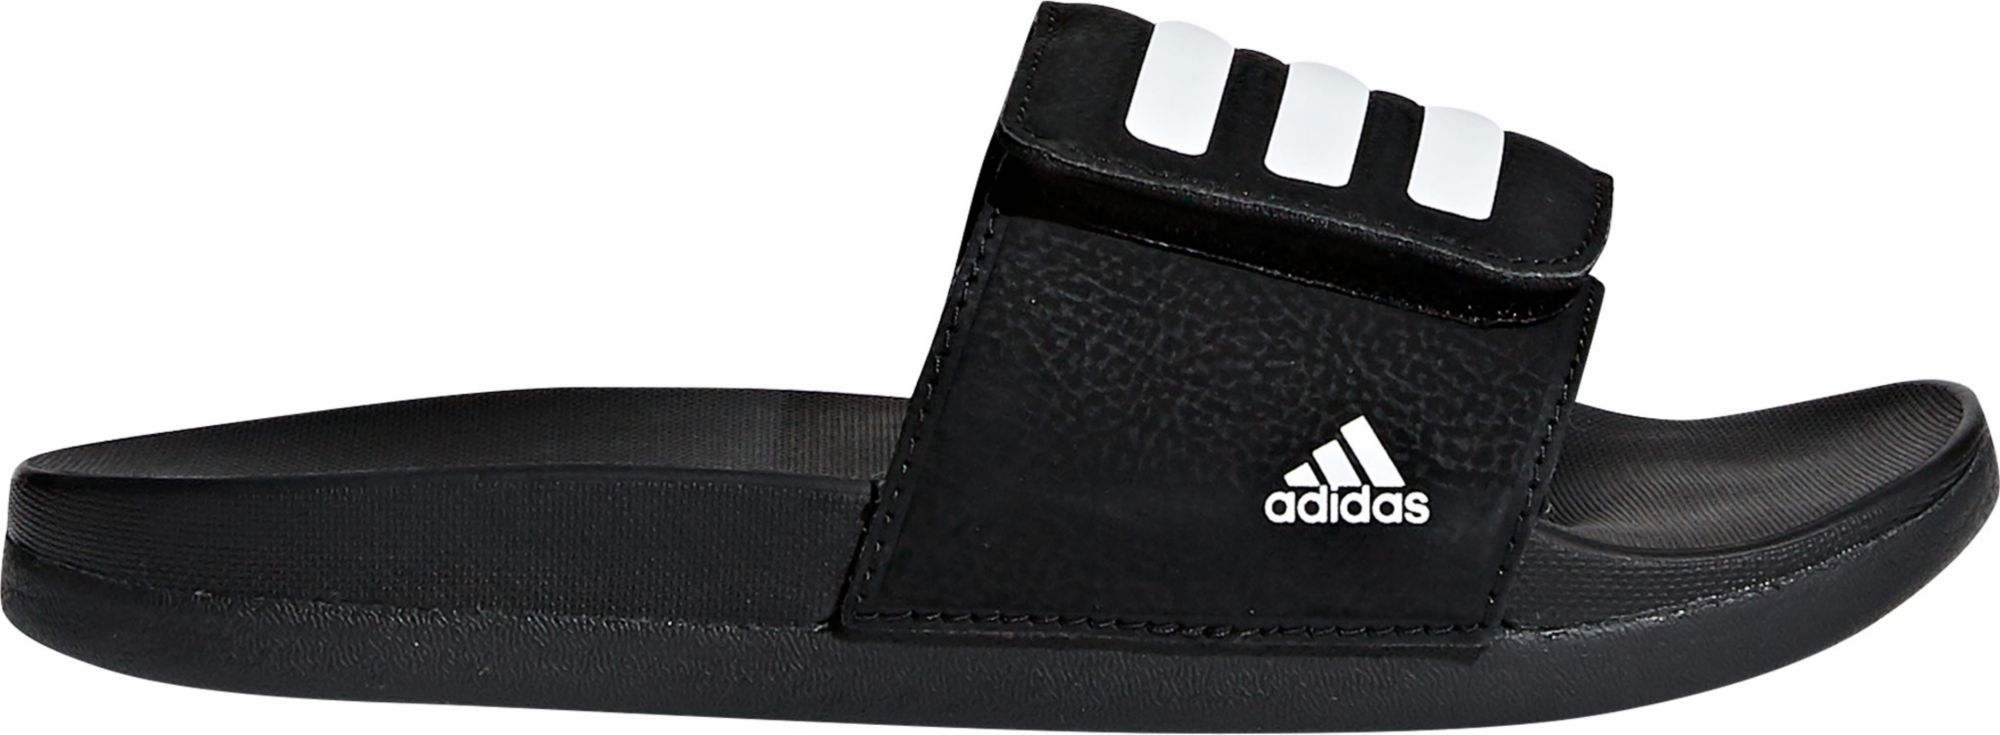 Adidas Kids' Adilette Cloud Foam Plus Adjustable Slides by Adidas